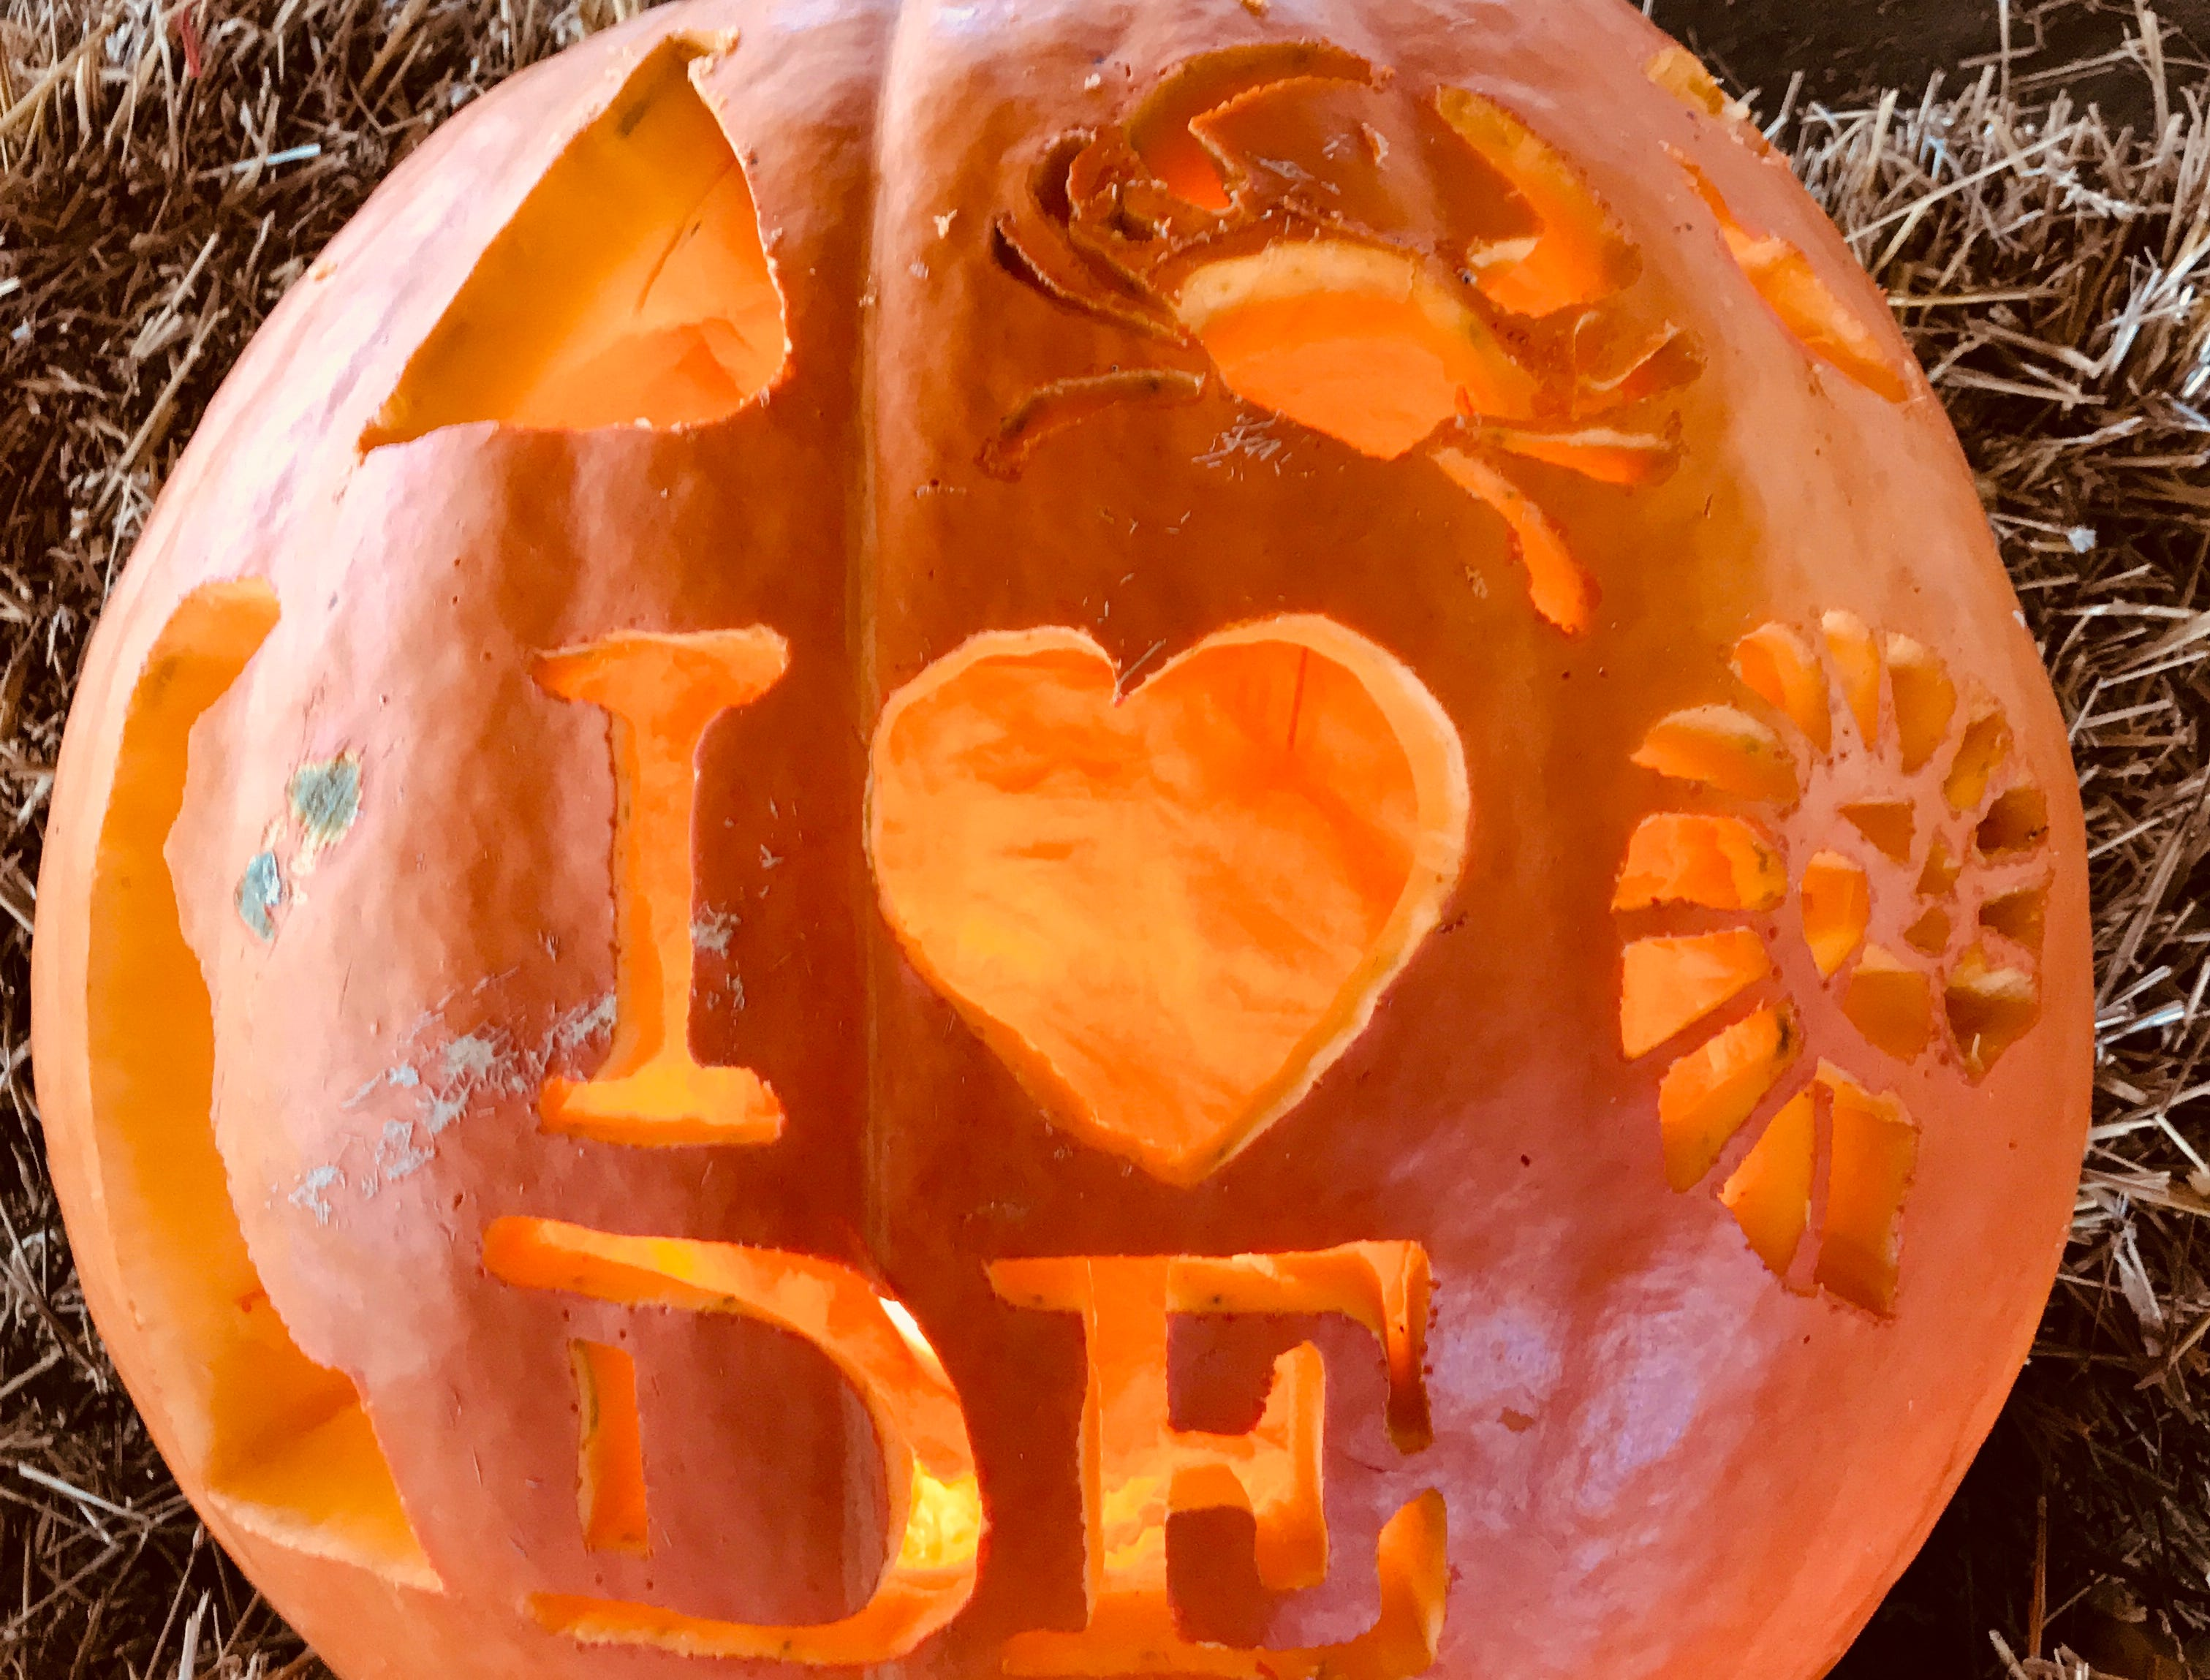 This salute to Delaware was created by Theresa Taylor for the Great Delaware Pumpkin Carve.